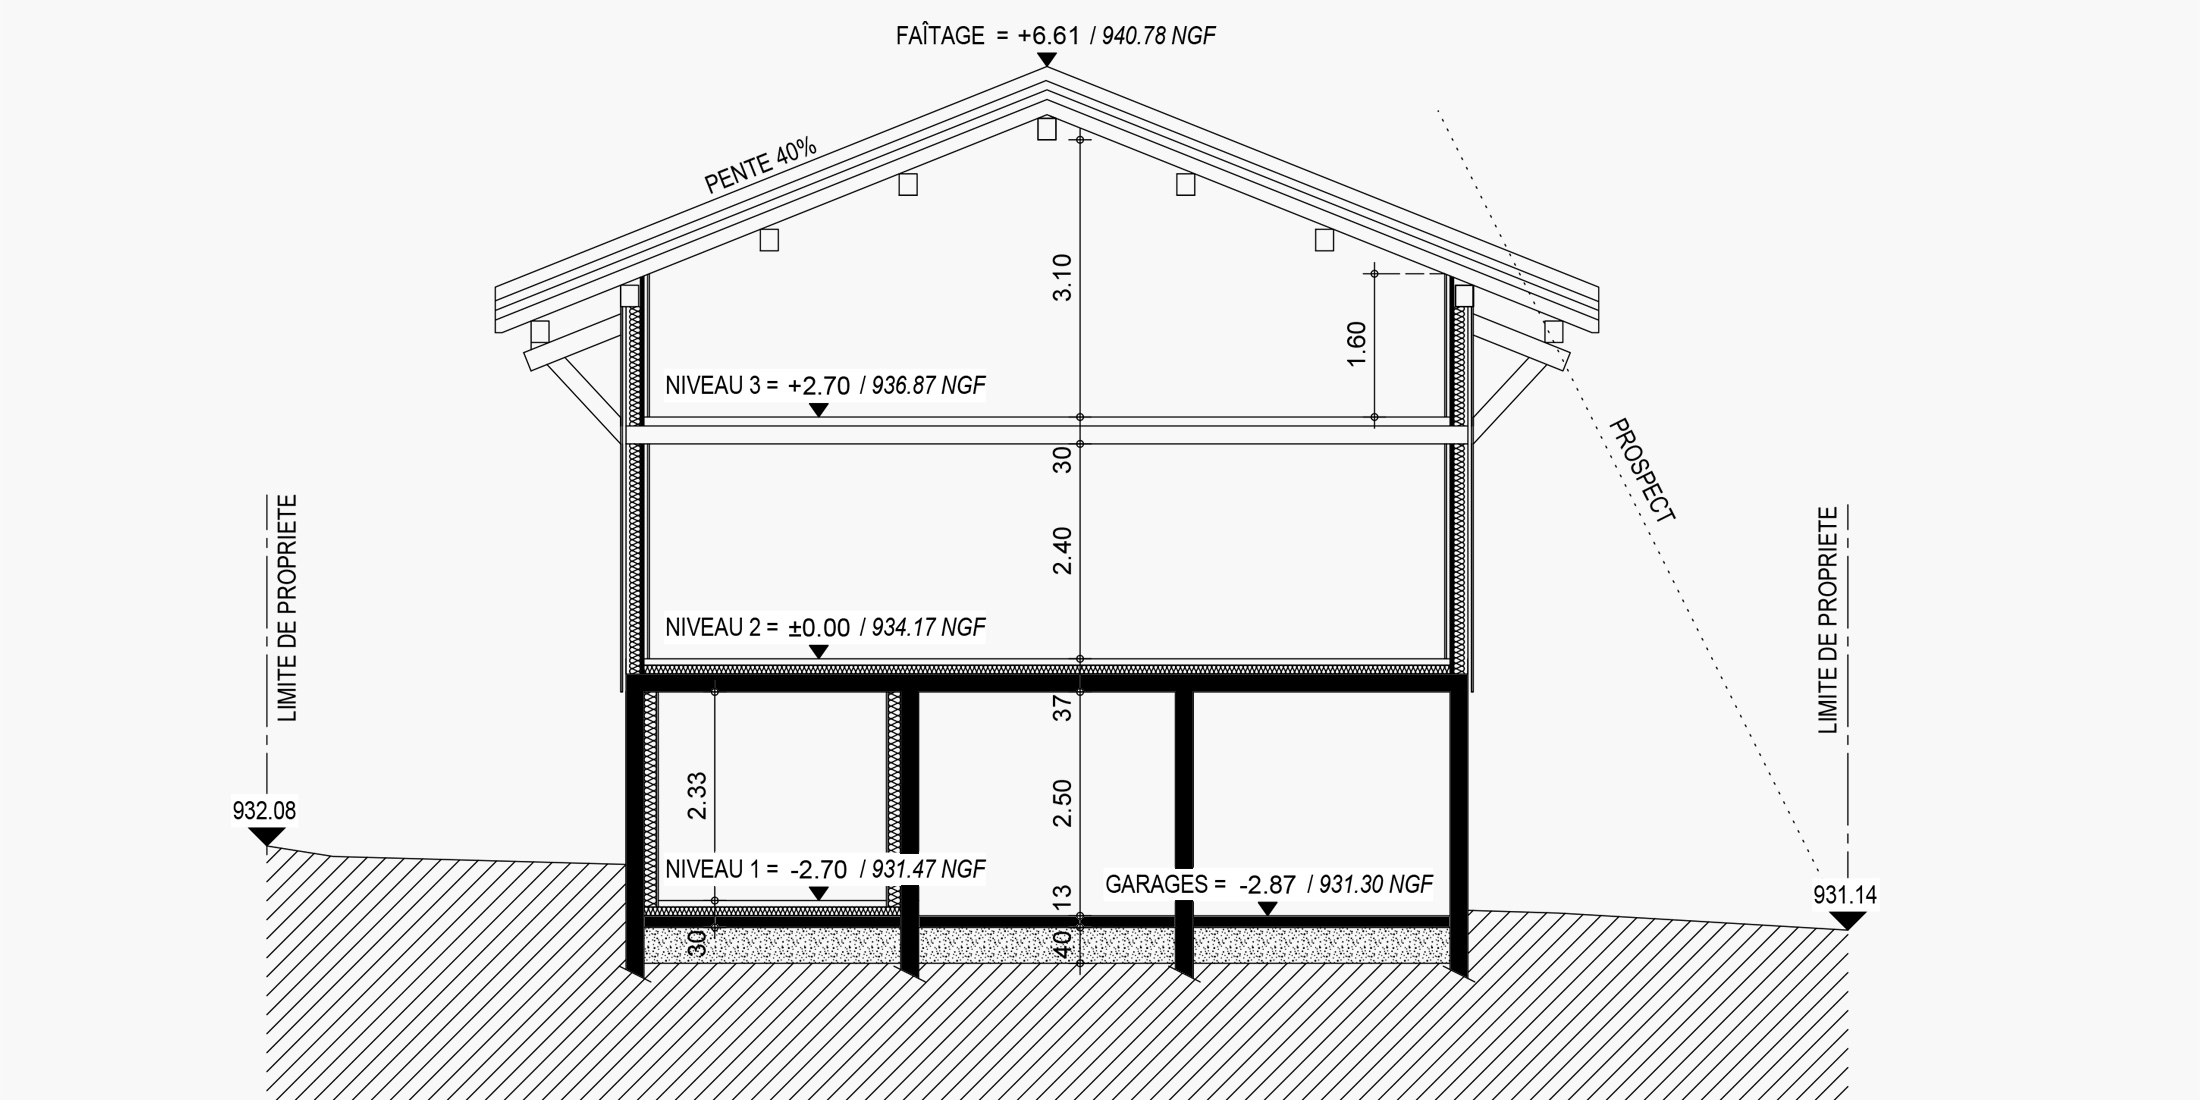 Construction garage Annecy, Chambéry, Aix-les-Bains, Rumilly - Savoie Plan